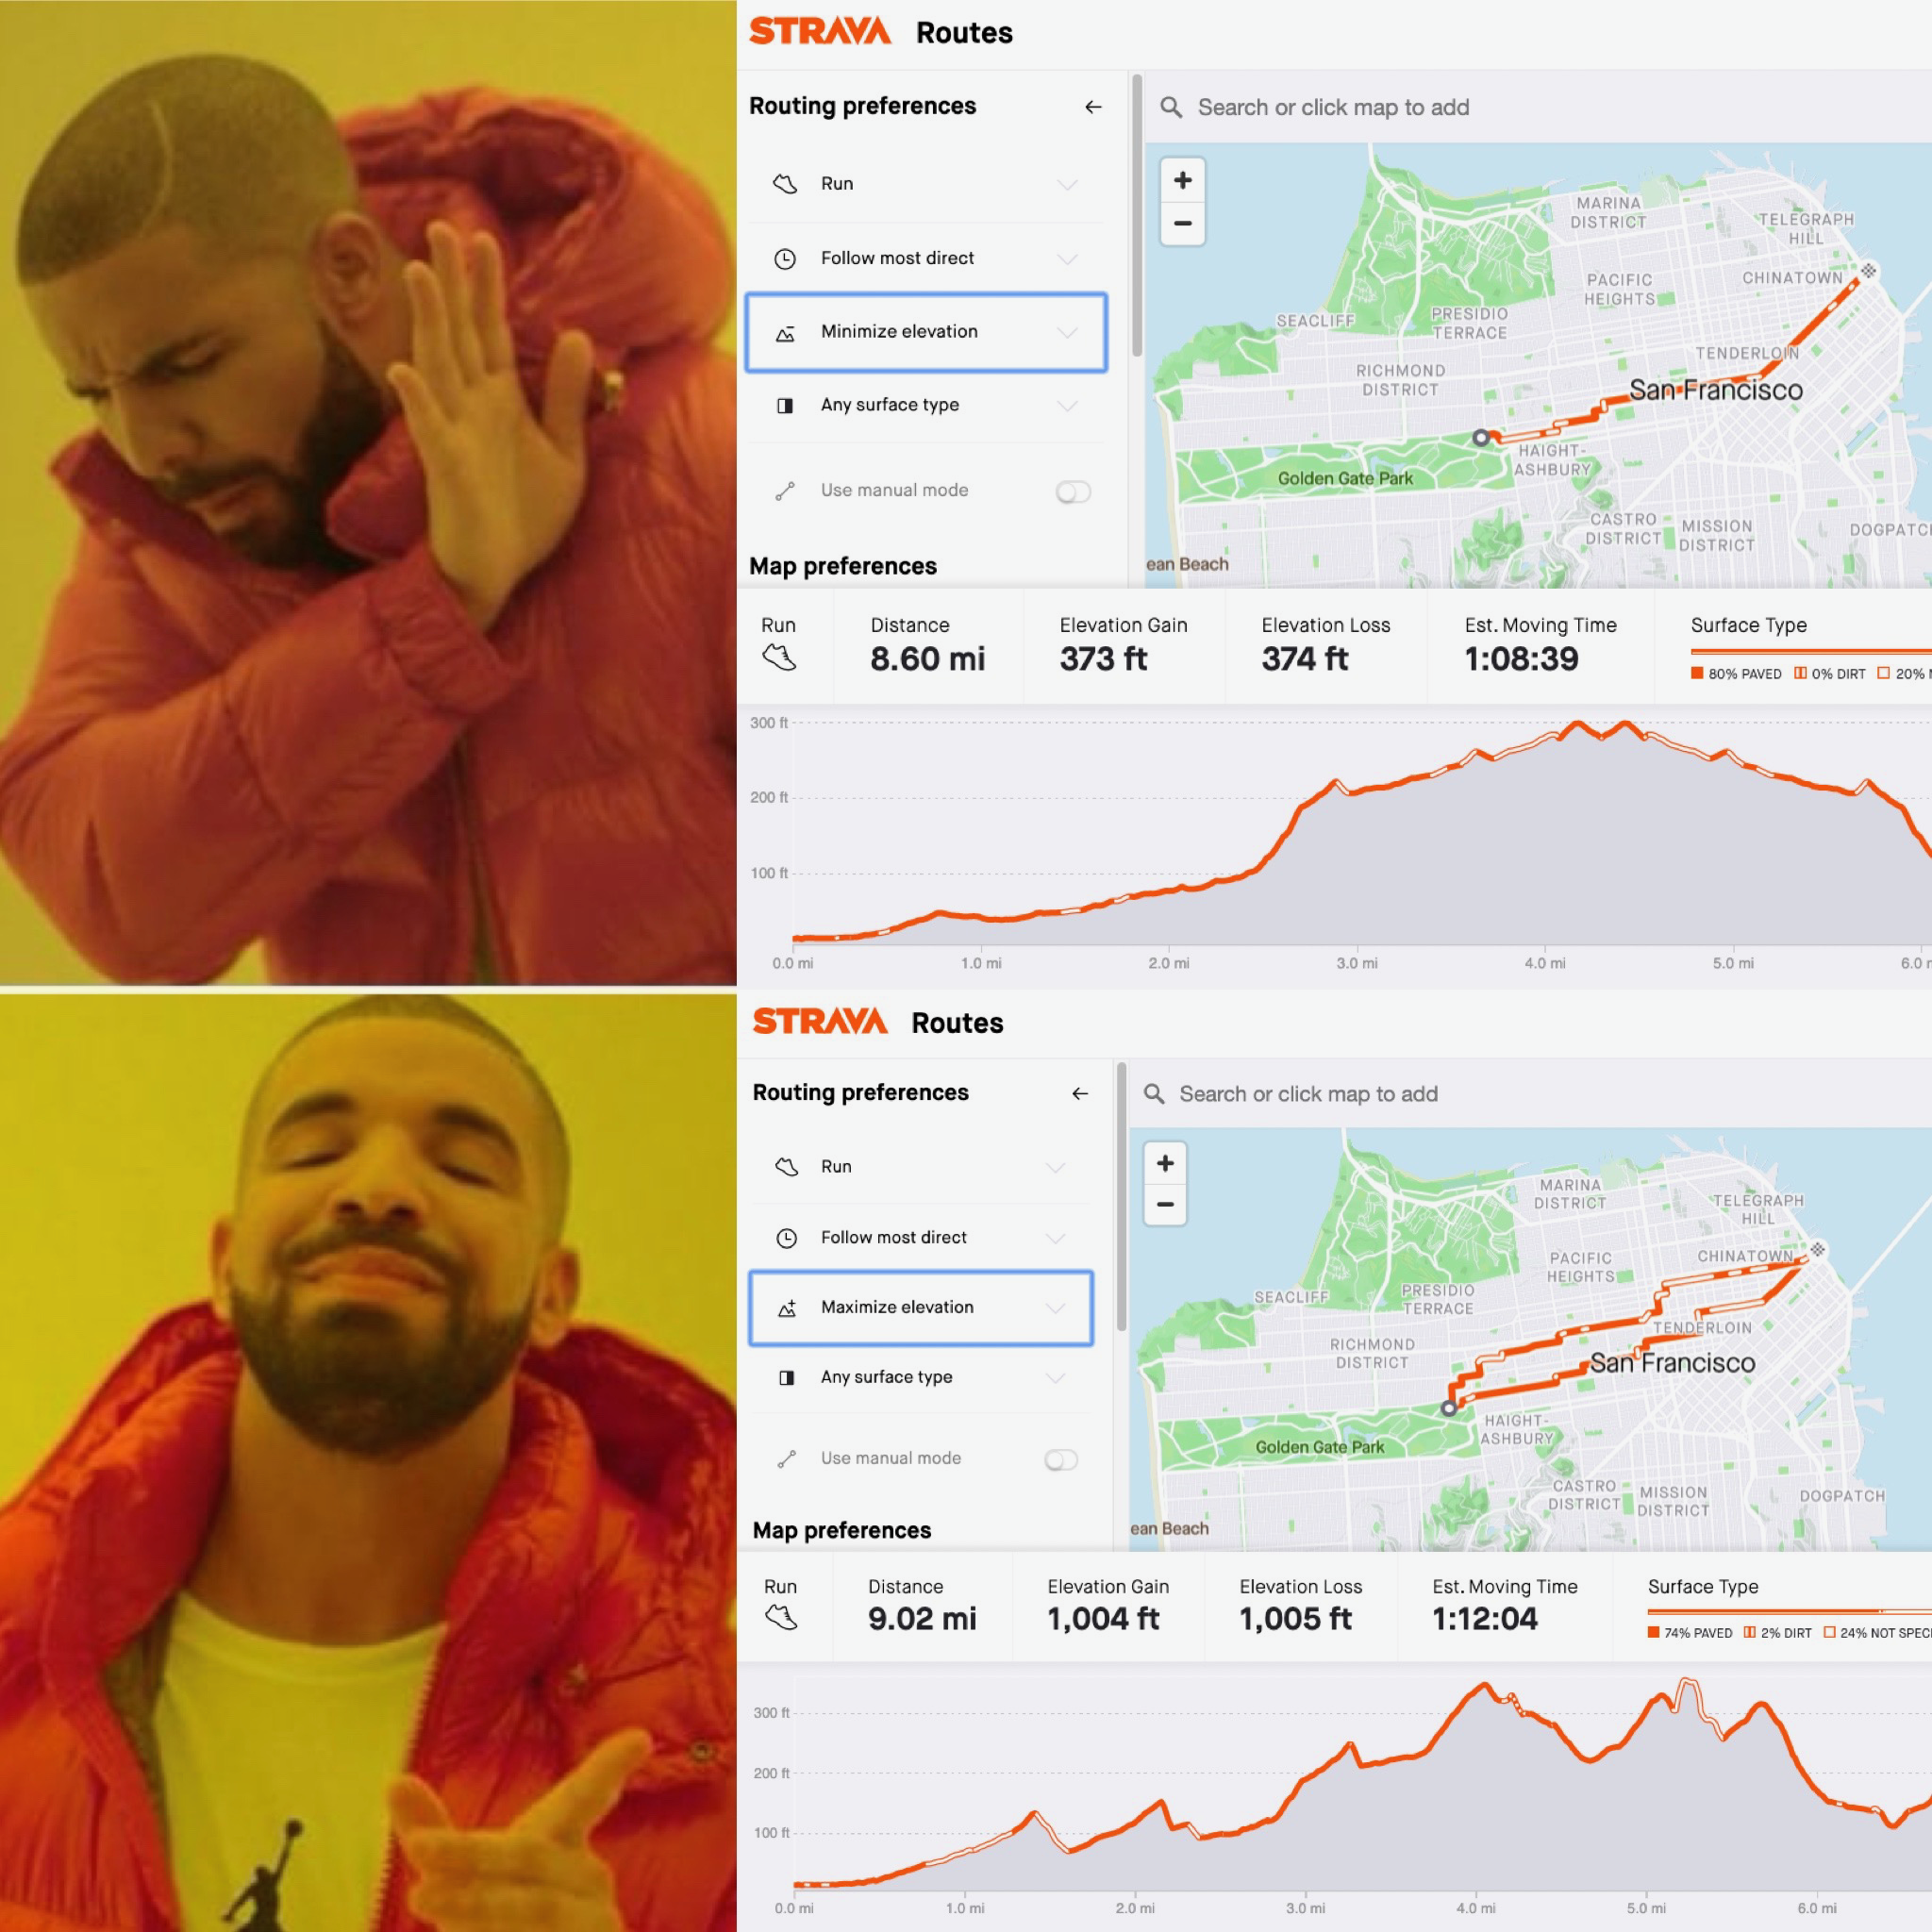 MAXIMIZE ELEVATION in Strava